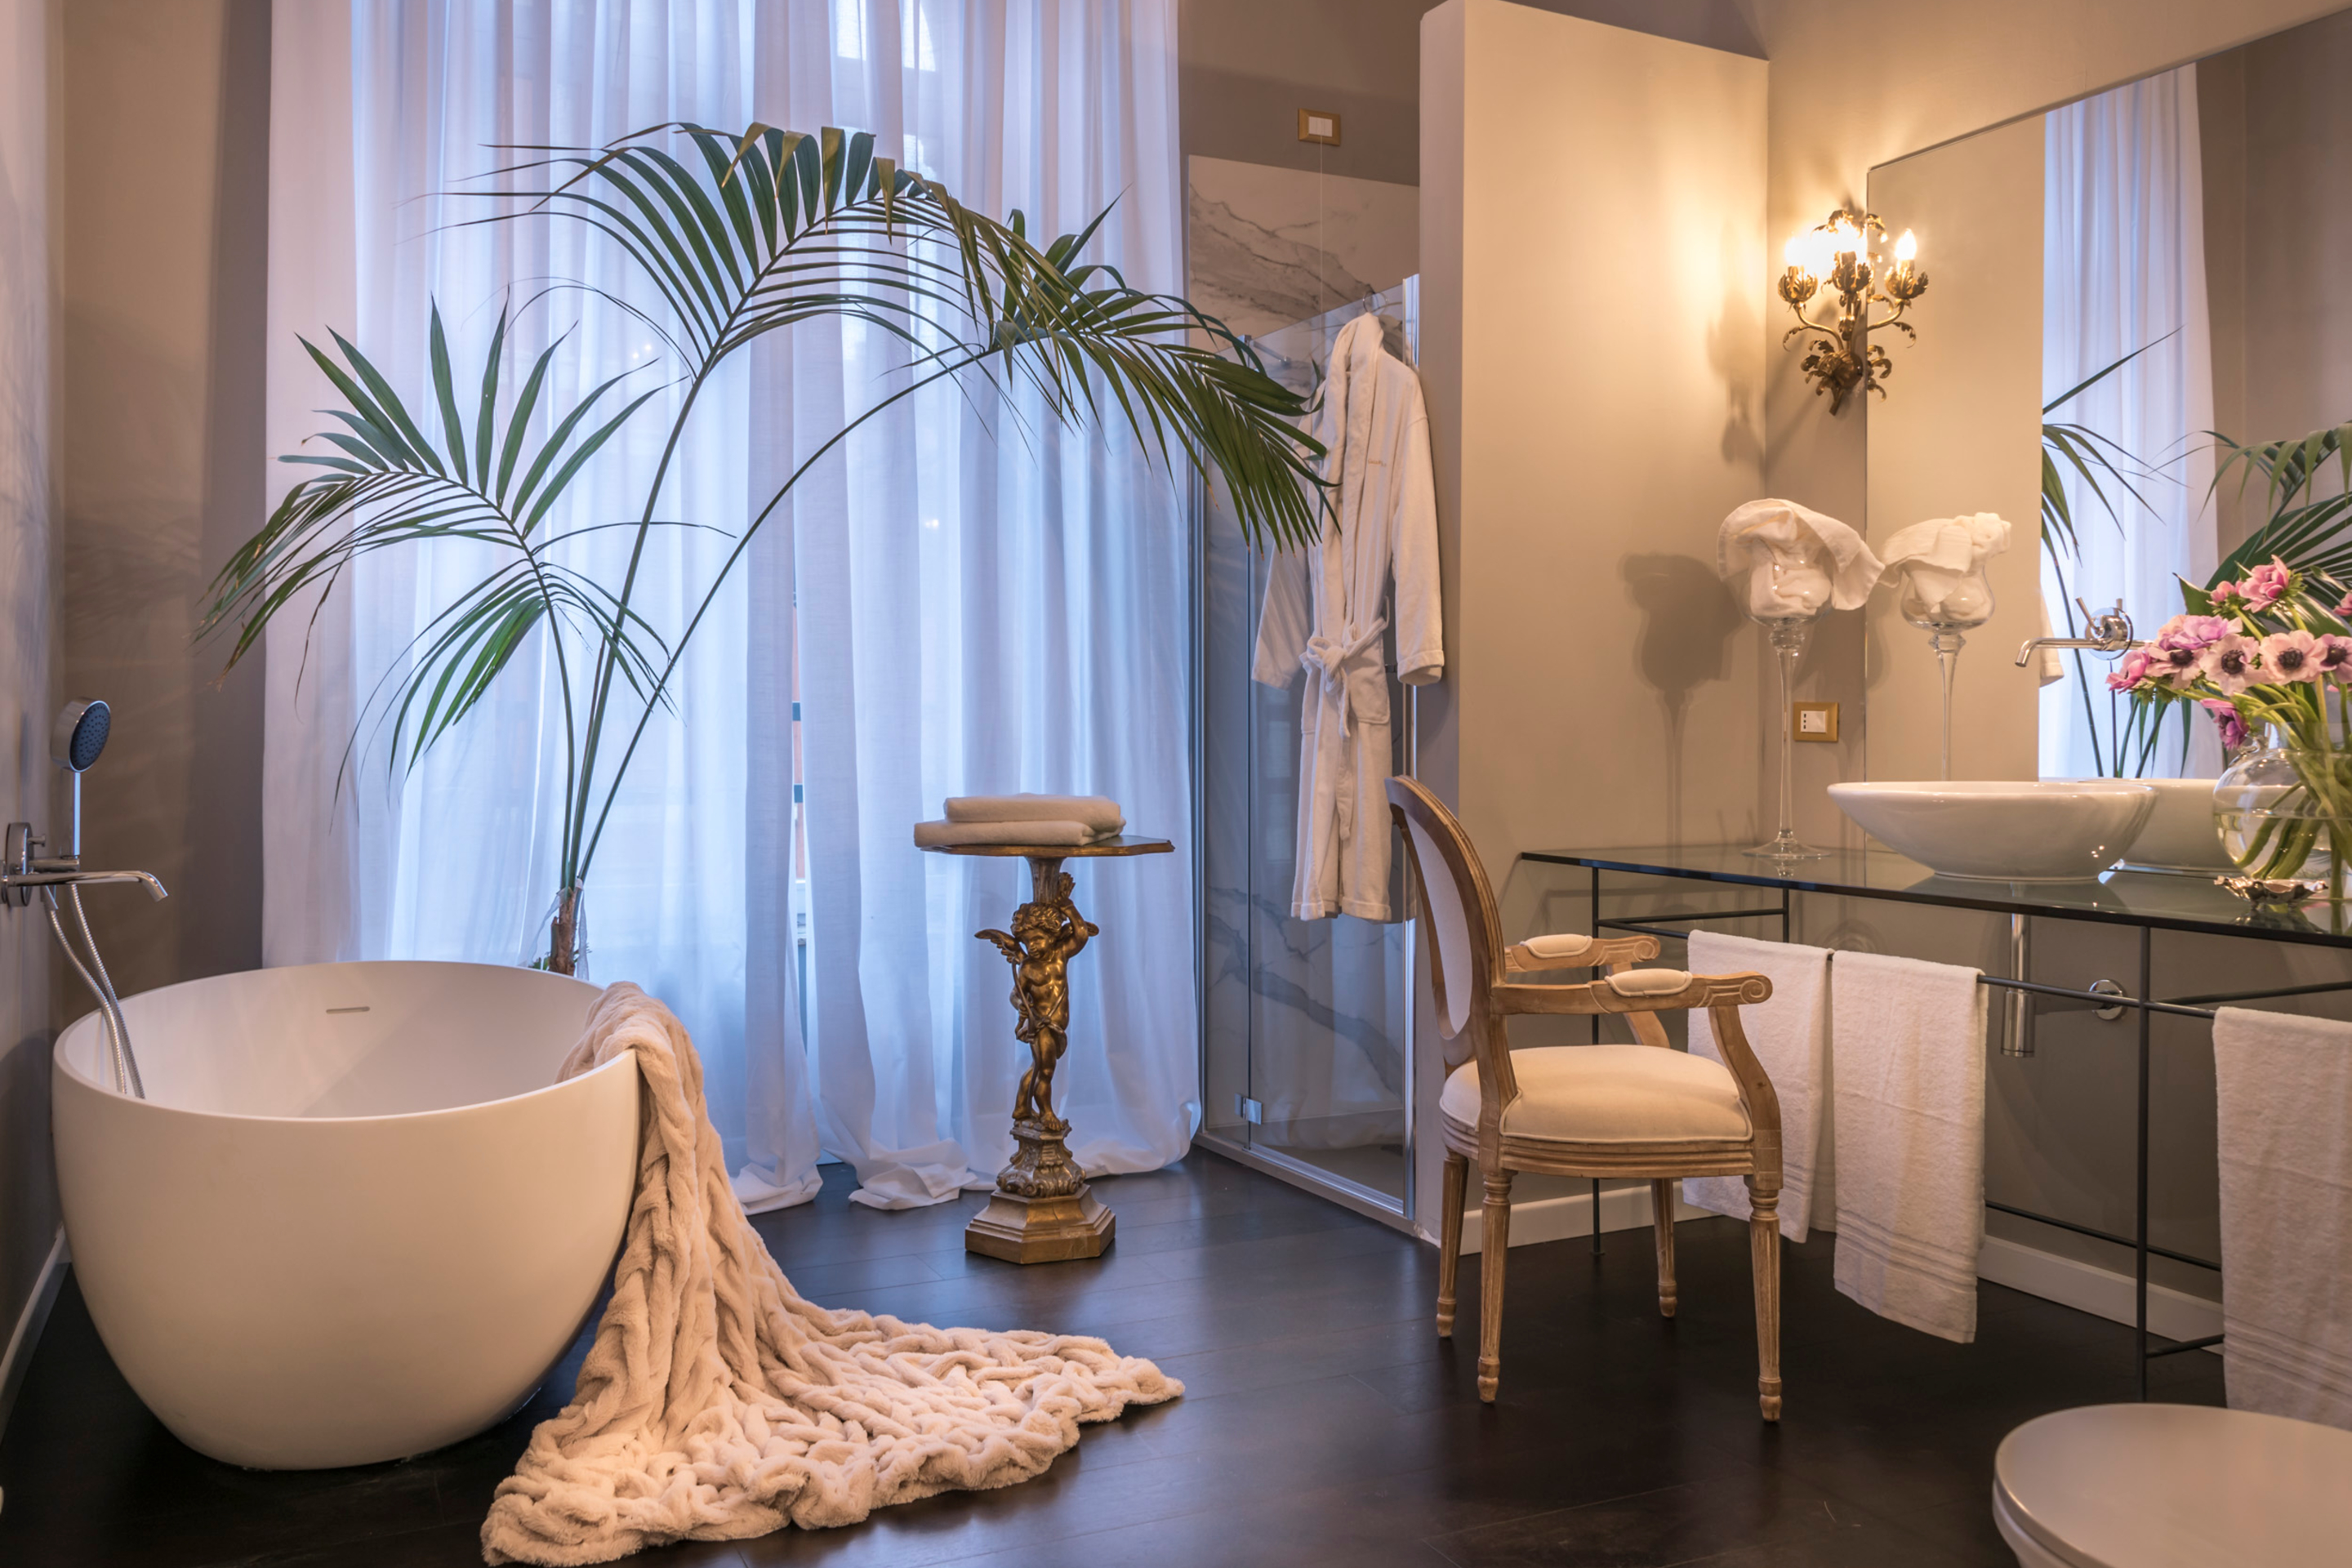 https://www.in-lombardia.it/sites/default/files/accomodation/gallery/101742/41859/arnaboldi_palace_suite_2_bagno.jpg